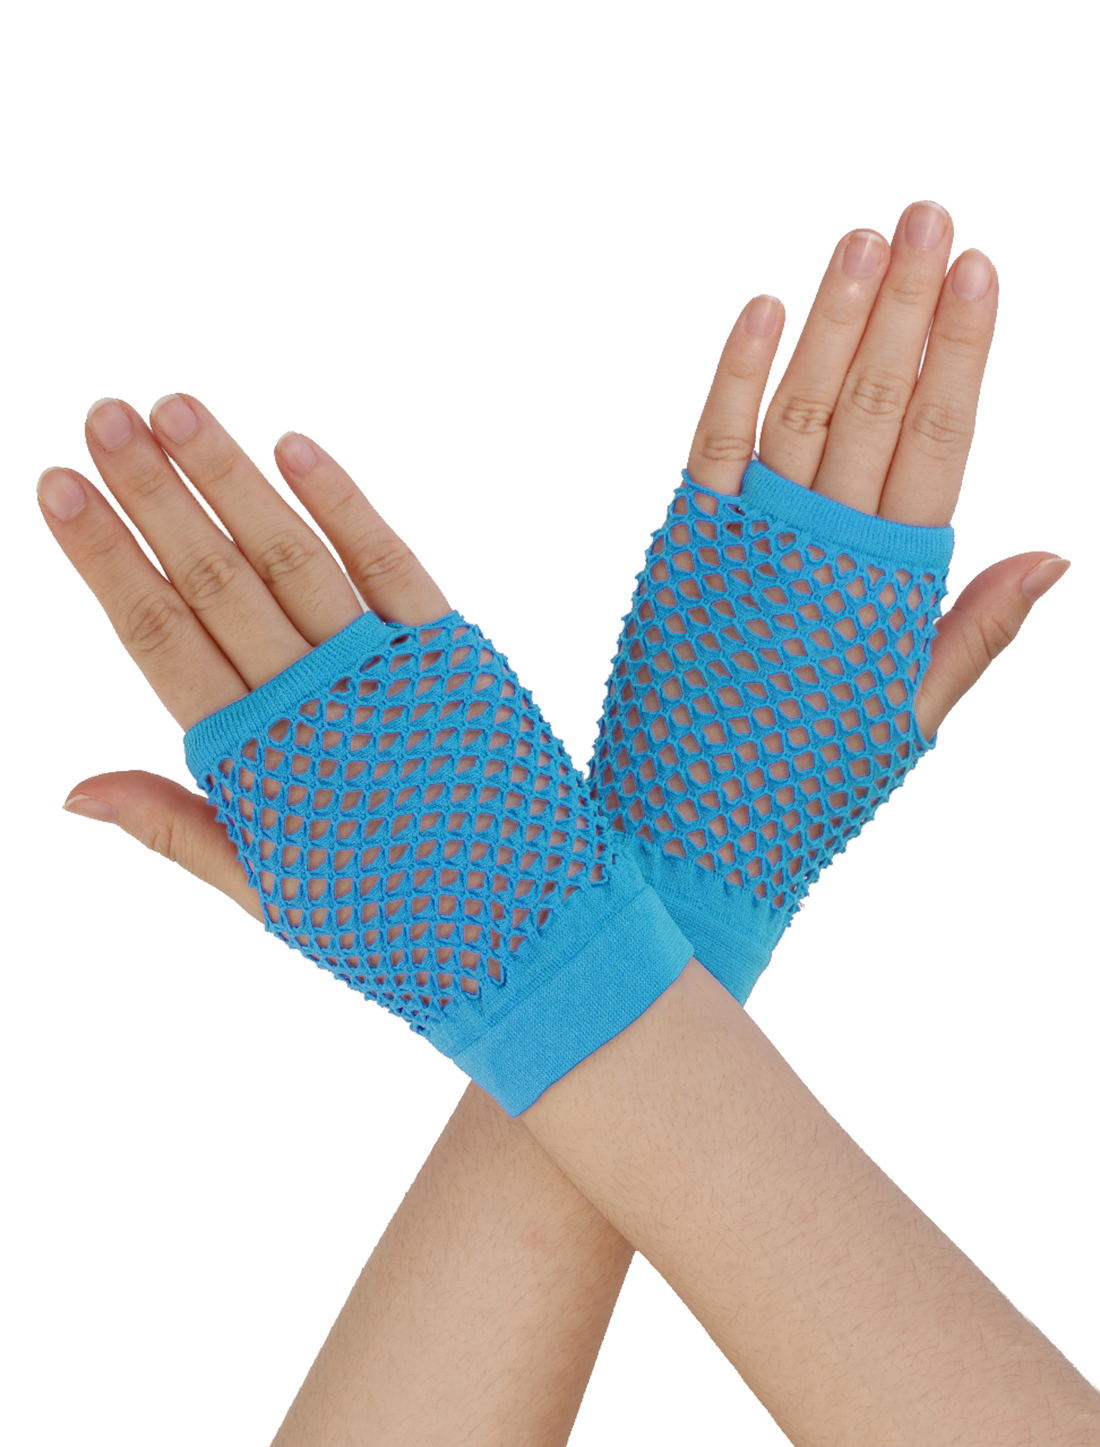 Women Wrist Length Stretchy Fingerless Fishnet Gloves 2 Pairs Sky Blue